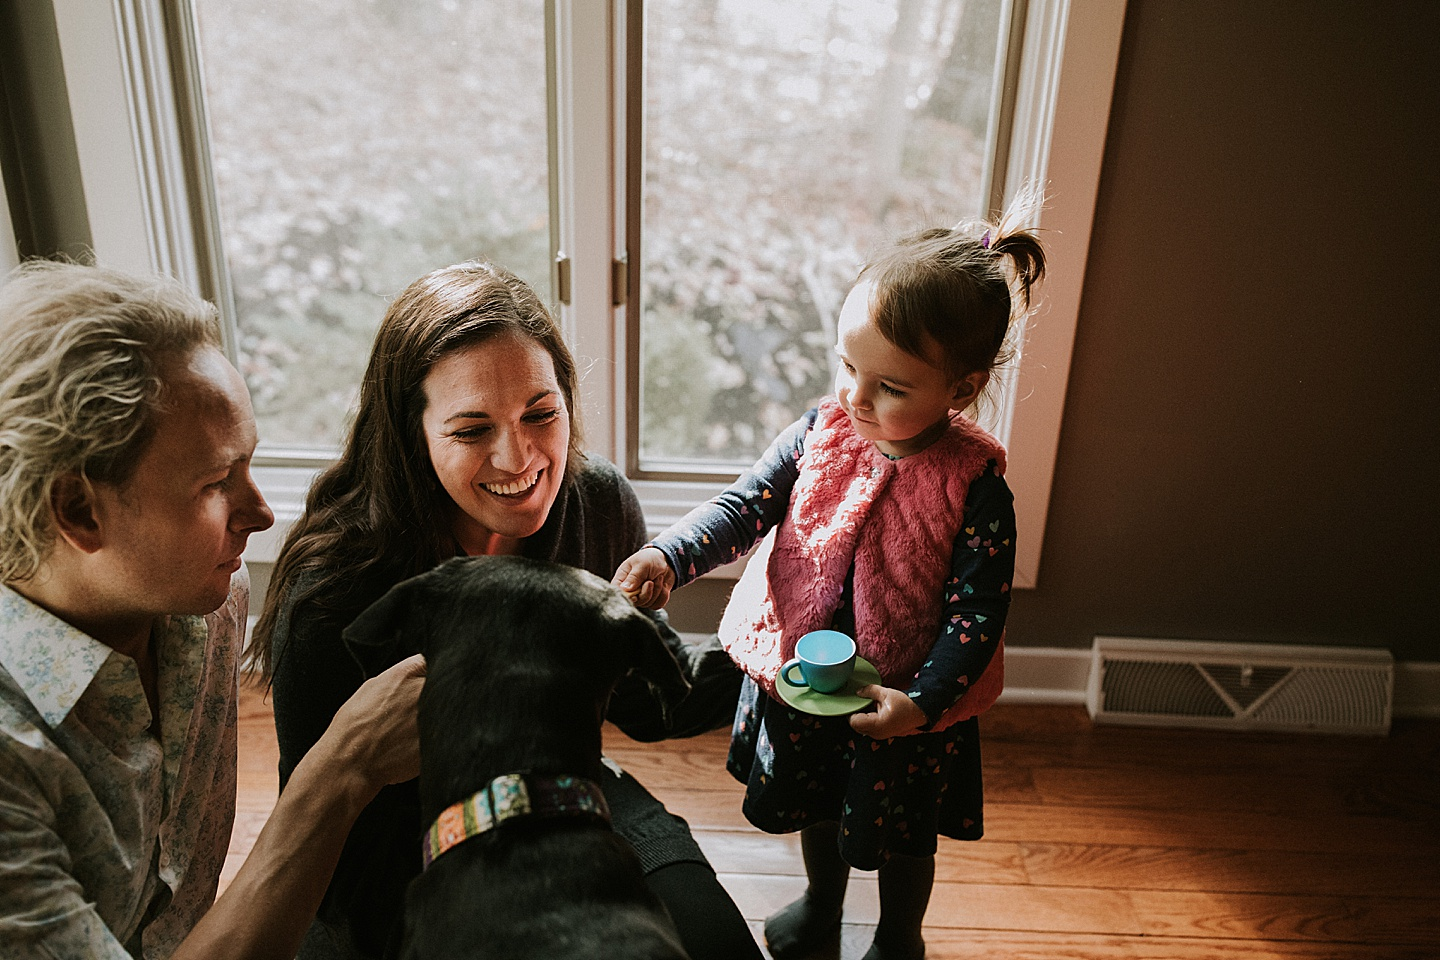 Family together with dog